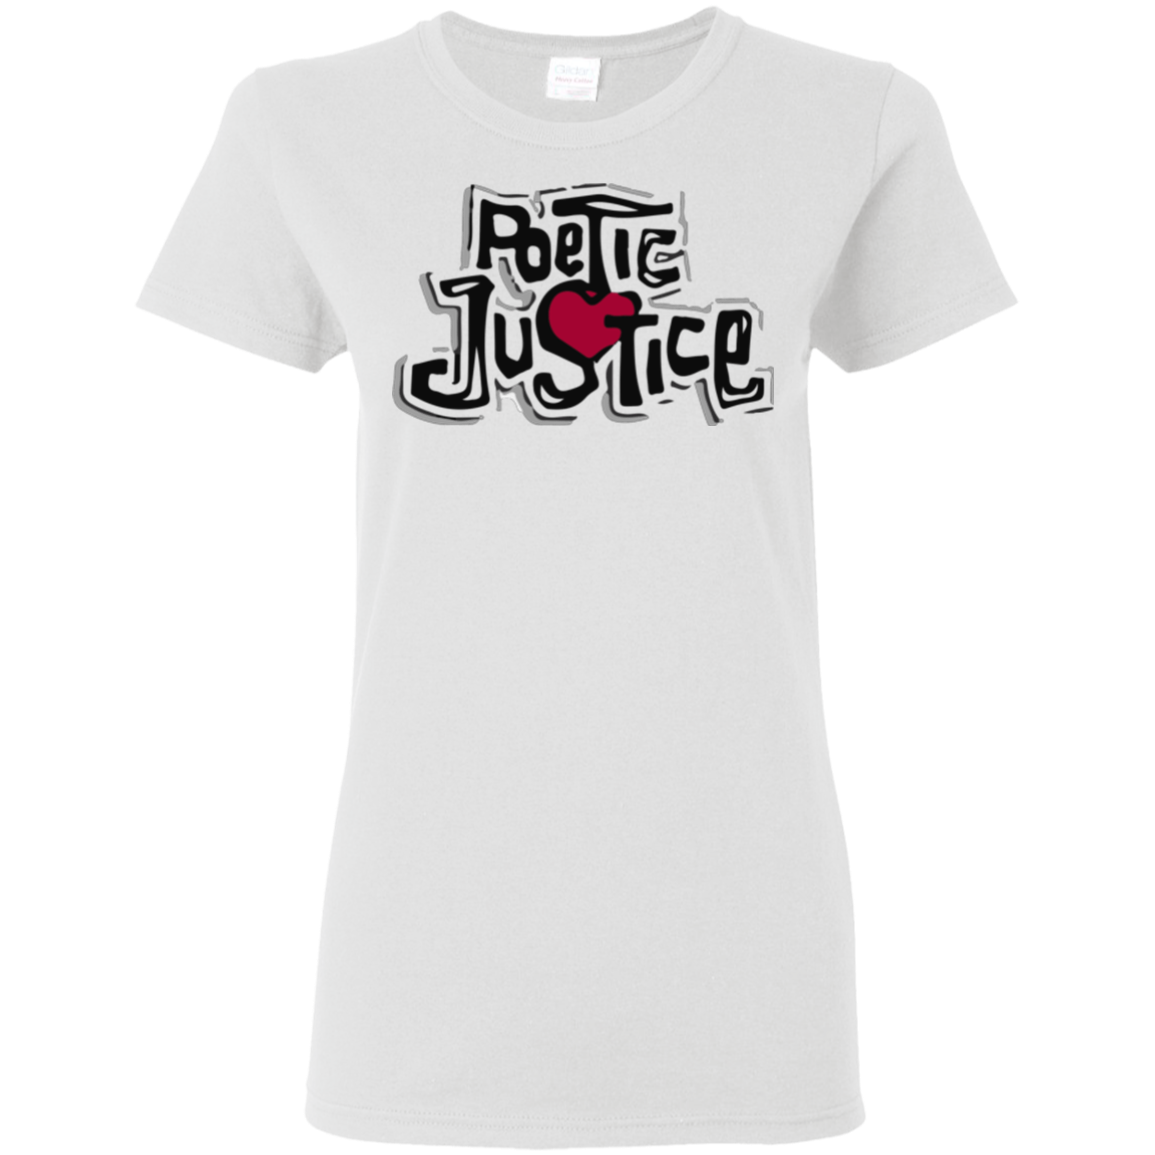 Poetic Justice Ladies White T-shirt (1993)